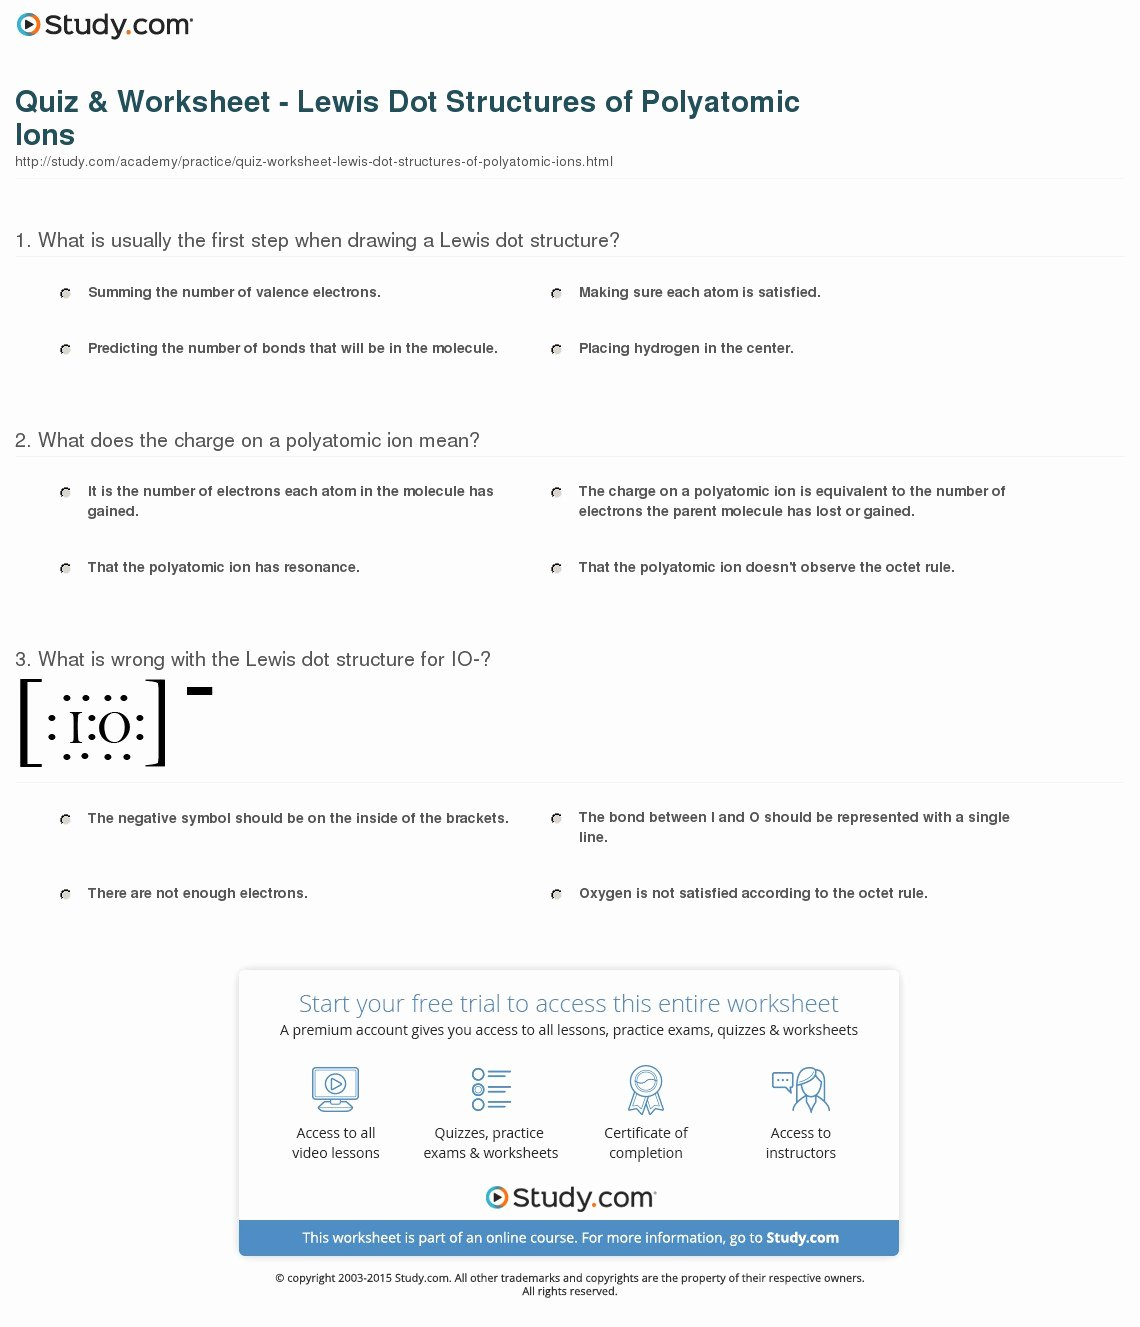 Polyatomic Ions Worksheet Answers Awesome Quiz & Worksheet Lewis Dot Structures Of Polyatomic Ions